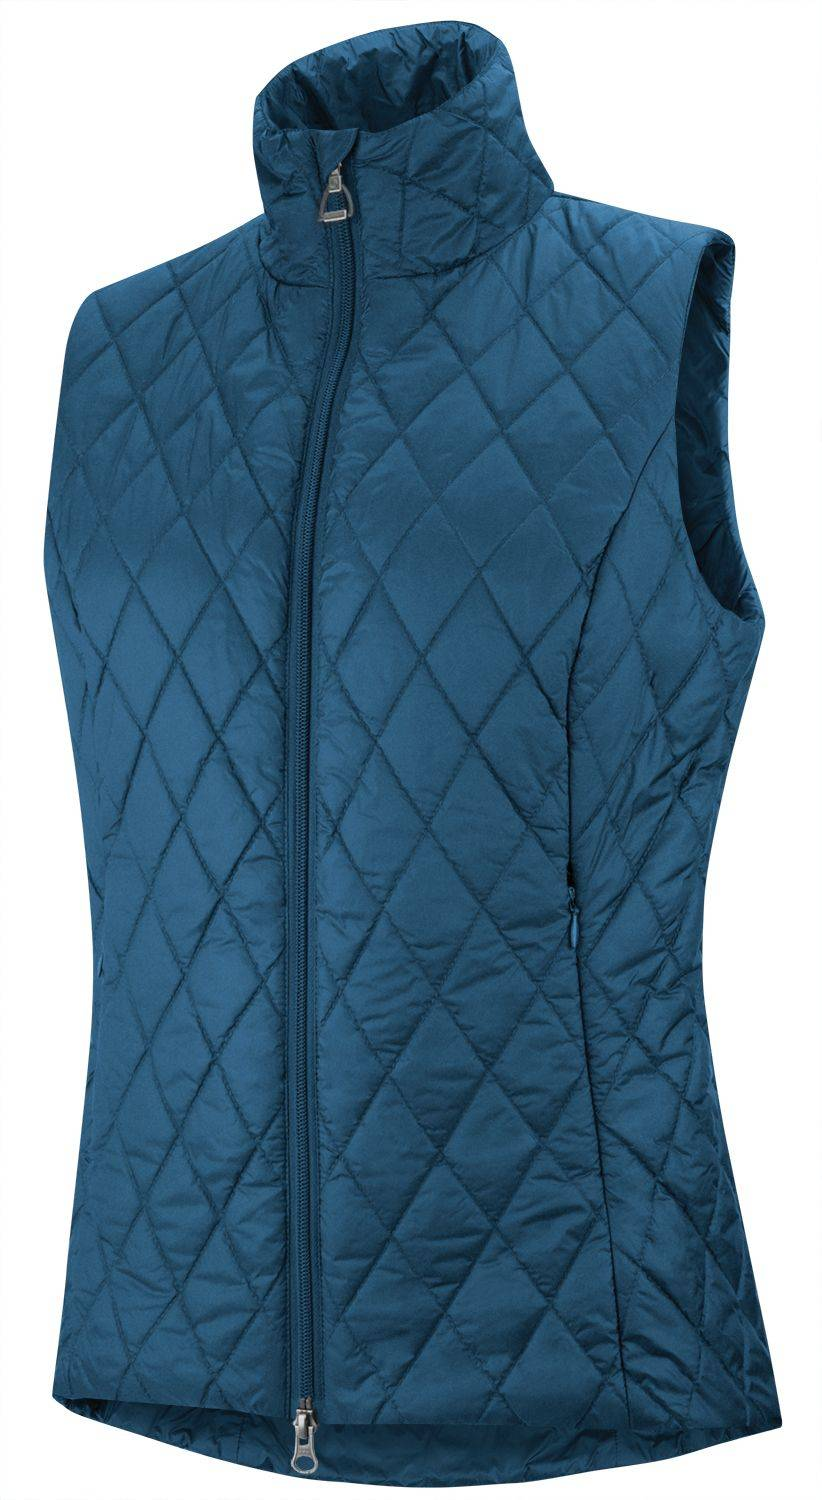 Irideon Harley Quilted Vest - Ladies